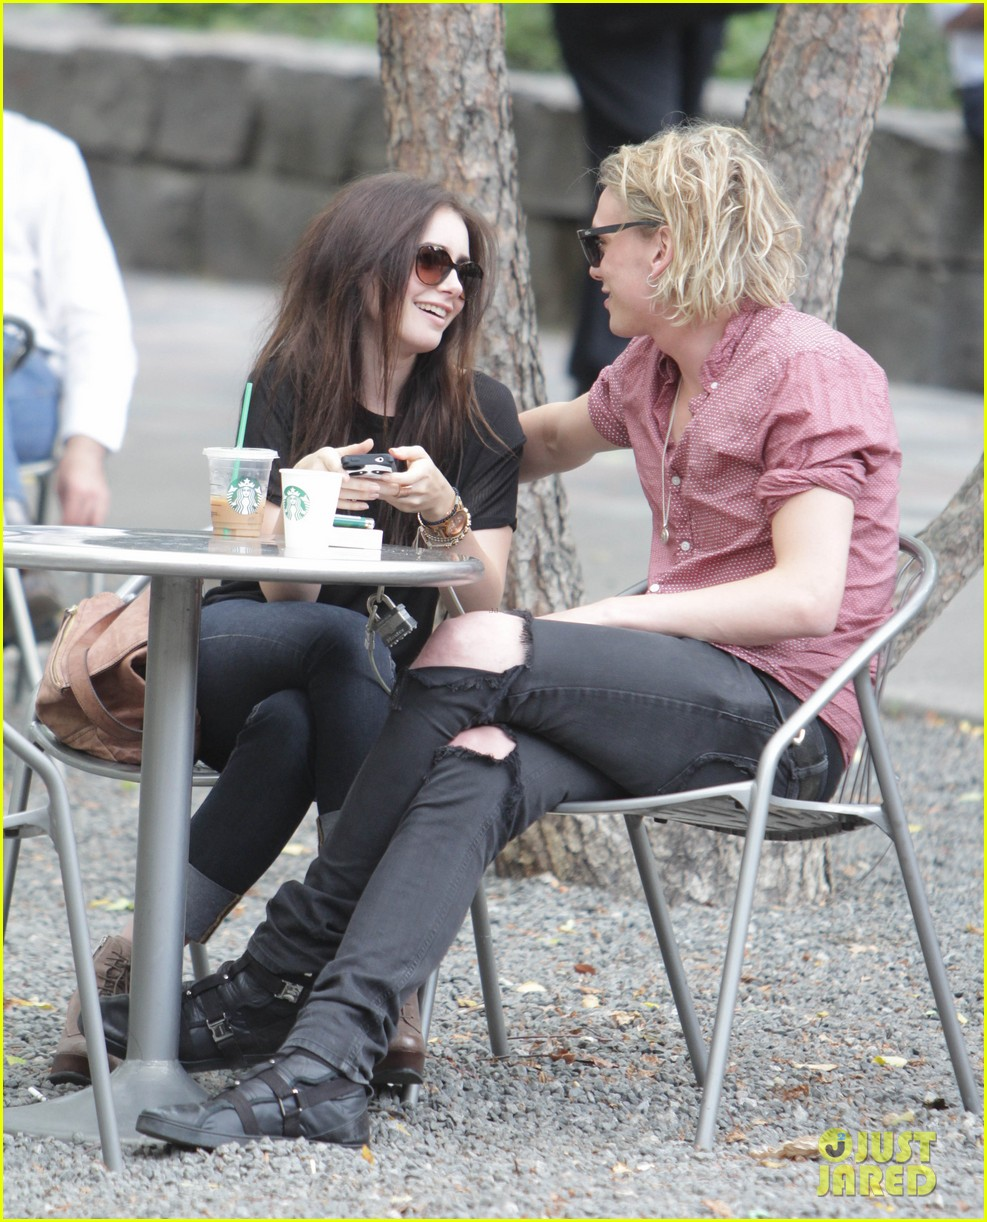 Are Jamie Campbell Bower And Lily Collins DatingJamie Campbell Bower And Lily Collins